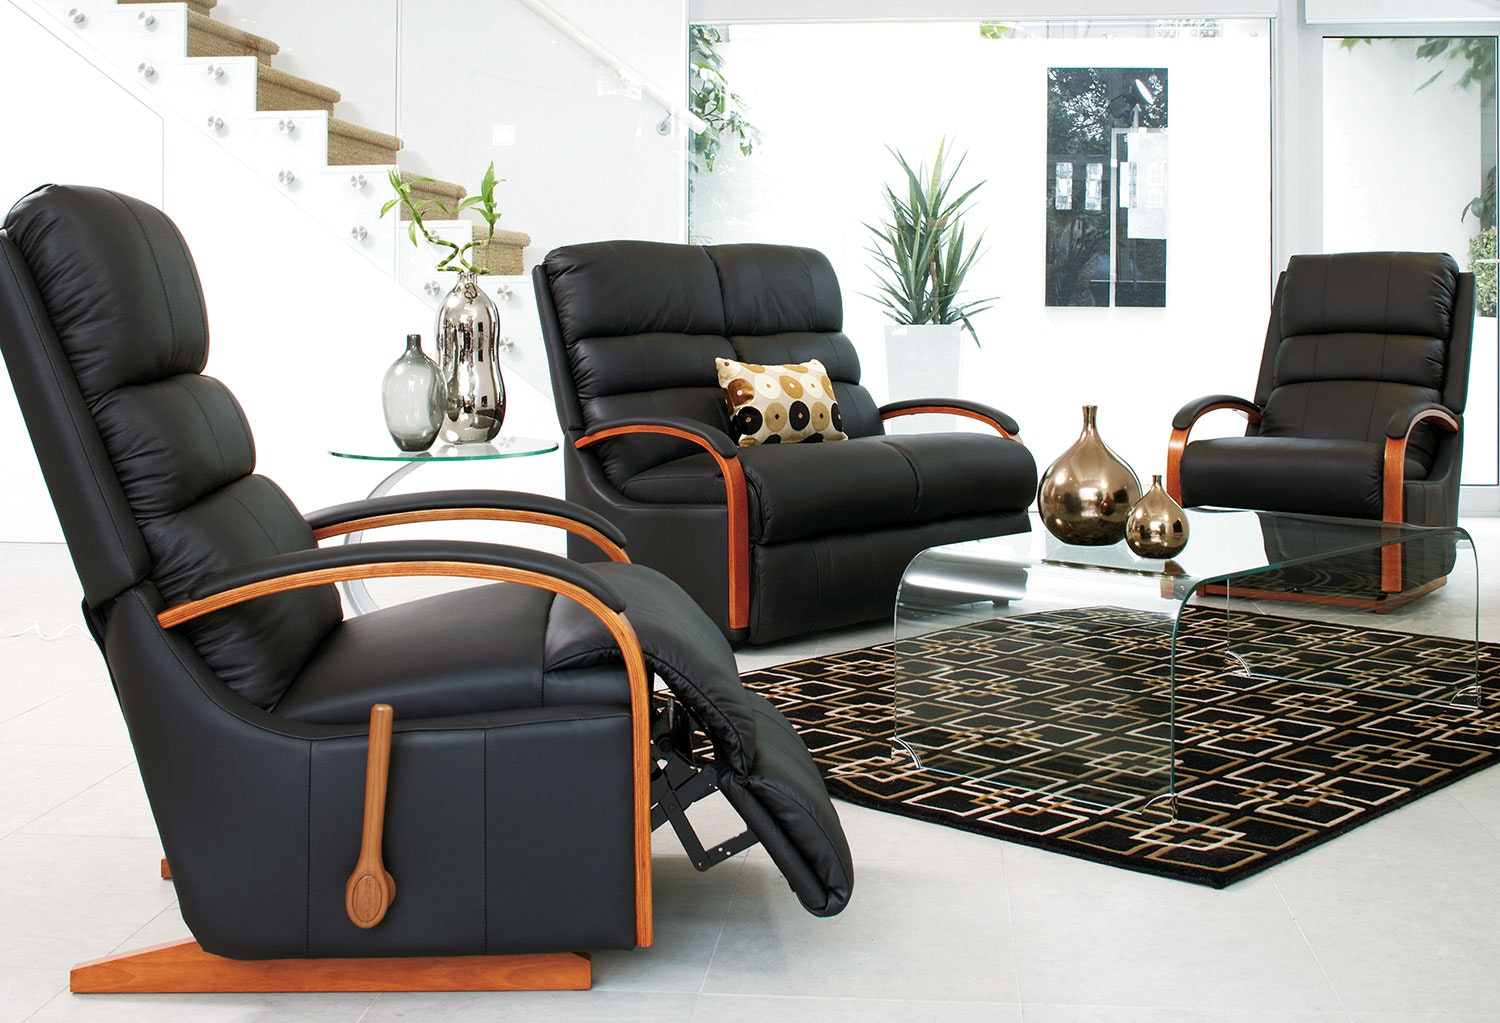 Charleston Leather La-Z-Boy Lounge Furniture by Morgan Furniture